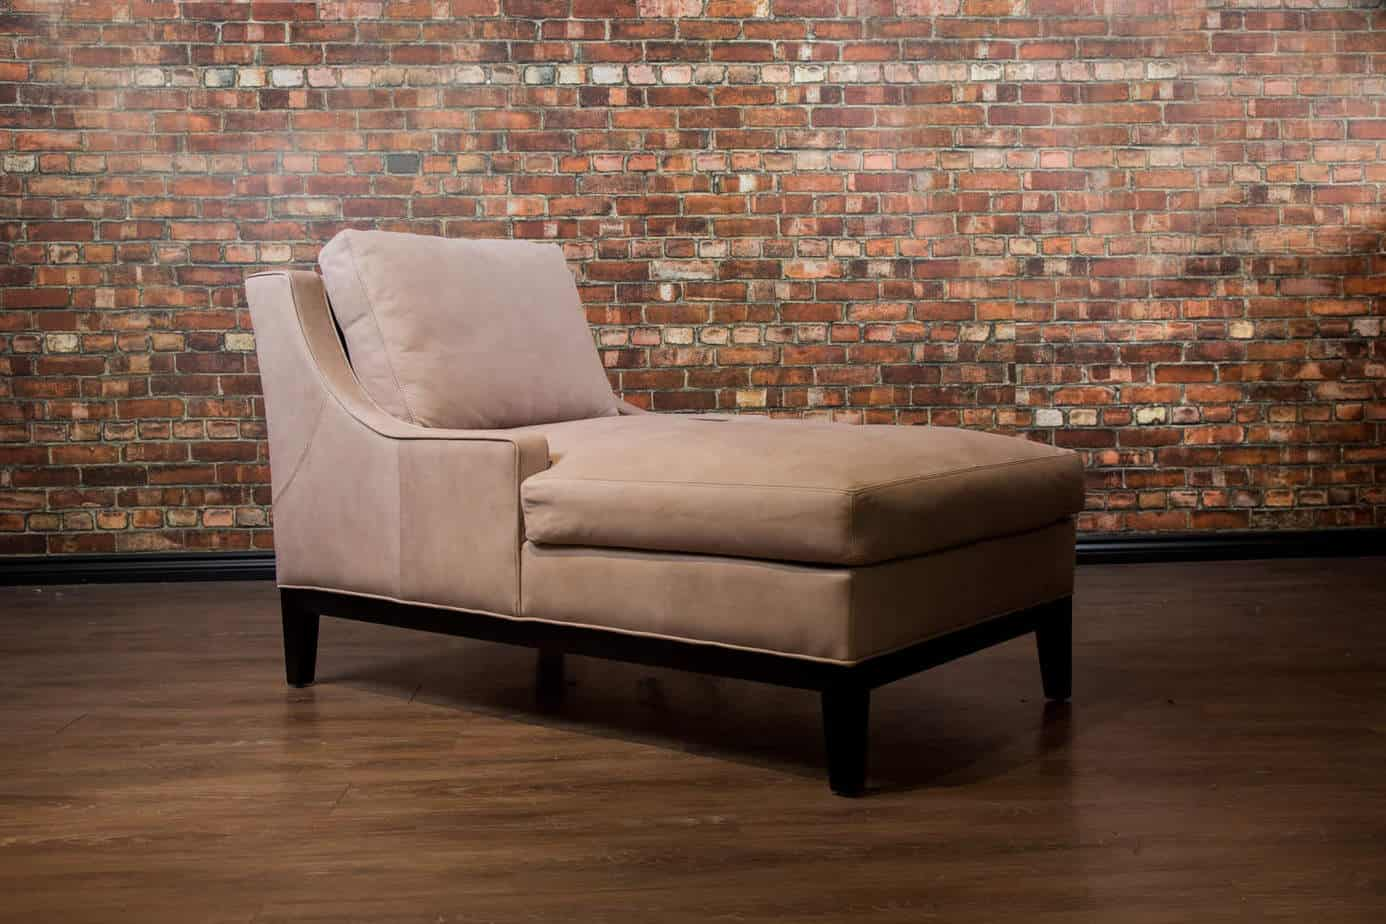 The Parlour Leather Chaise Collection | Canada's Boss Leather Sofas on leather stools, leather recliner, leather fabric, leather bench, leather couch, leather footstool, leather slipcovers for couches, leather love seats, leather bedroom, leather reclining sofa, leather sectional sofa, leather journal, leather modern, leather design, leather benches, leather furniture, leather settee, leather living room, leather tv stand, leather chaps,